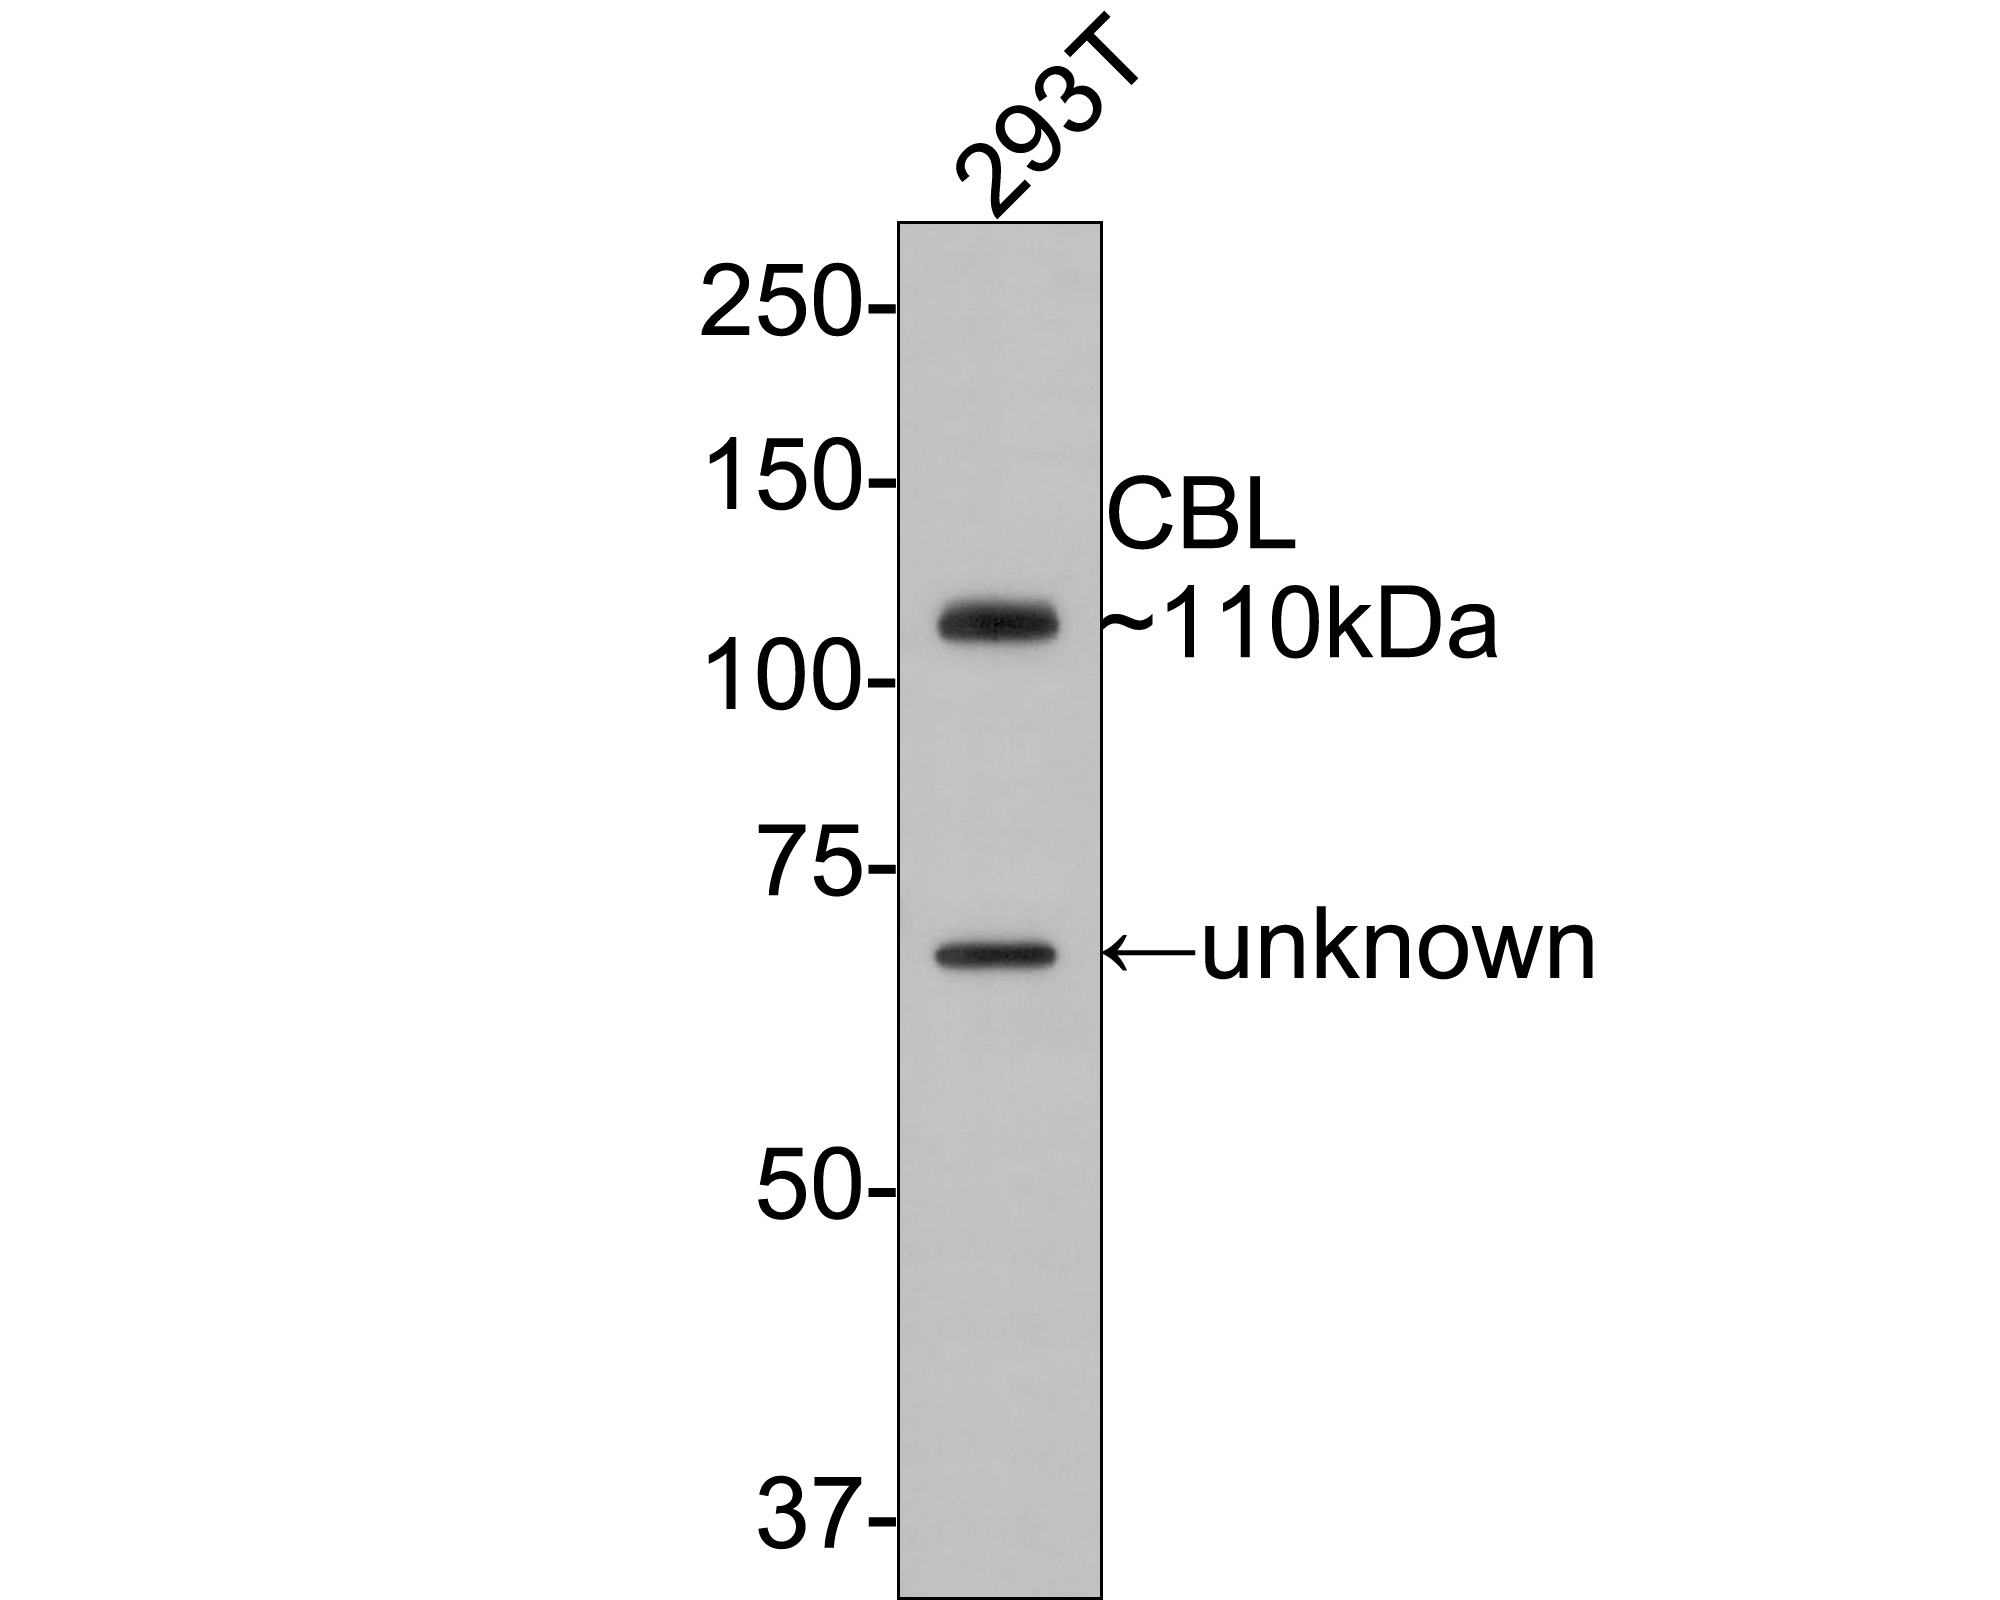 Western blot analysis of CBL on THP-1 cell lysates. Proteins were transferred to a PVDF membrane and blocked with 5% BSA in PBS for 1 hour at room temperature. The primary antibody (ER2001-61, 1/500) was used in 5% BSA at room temperature for 2 hours. Goat Anti-Rabbit IgG - HRP Secondary Antibody (HA1001) at 1:5,000 dilution was used for 1 hour at room temperature.